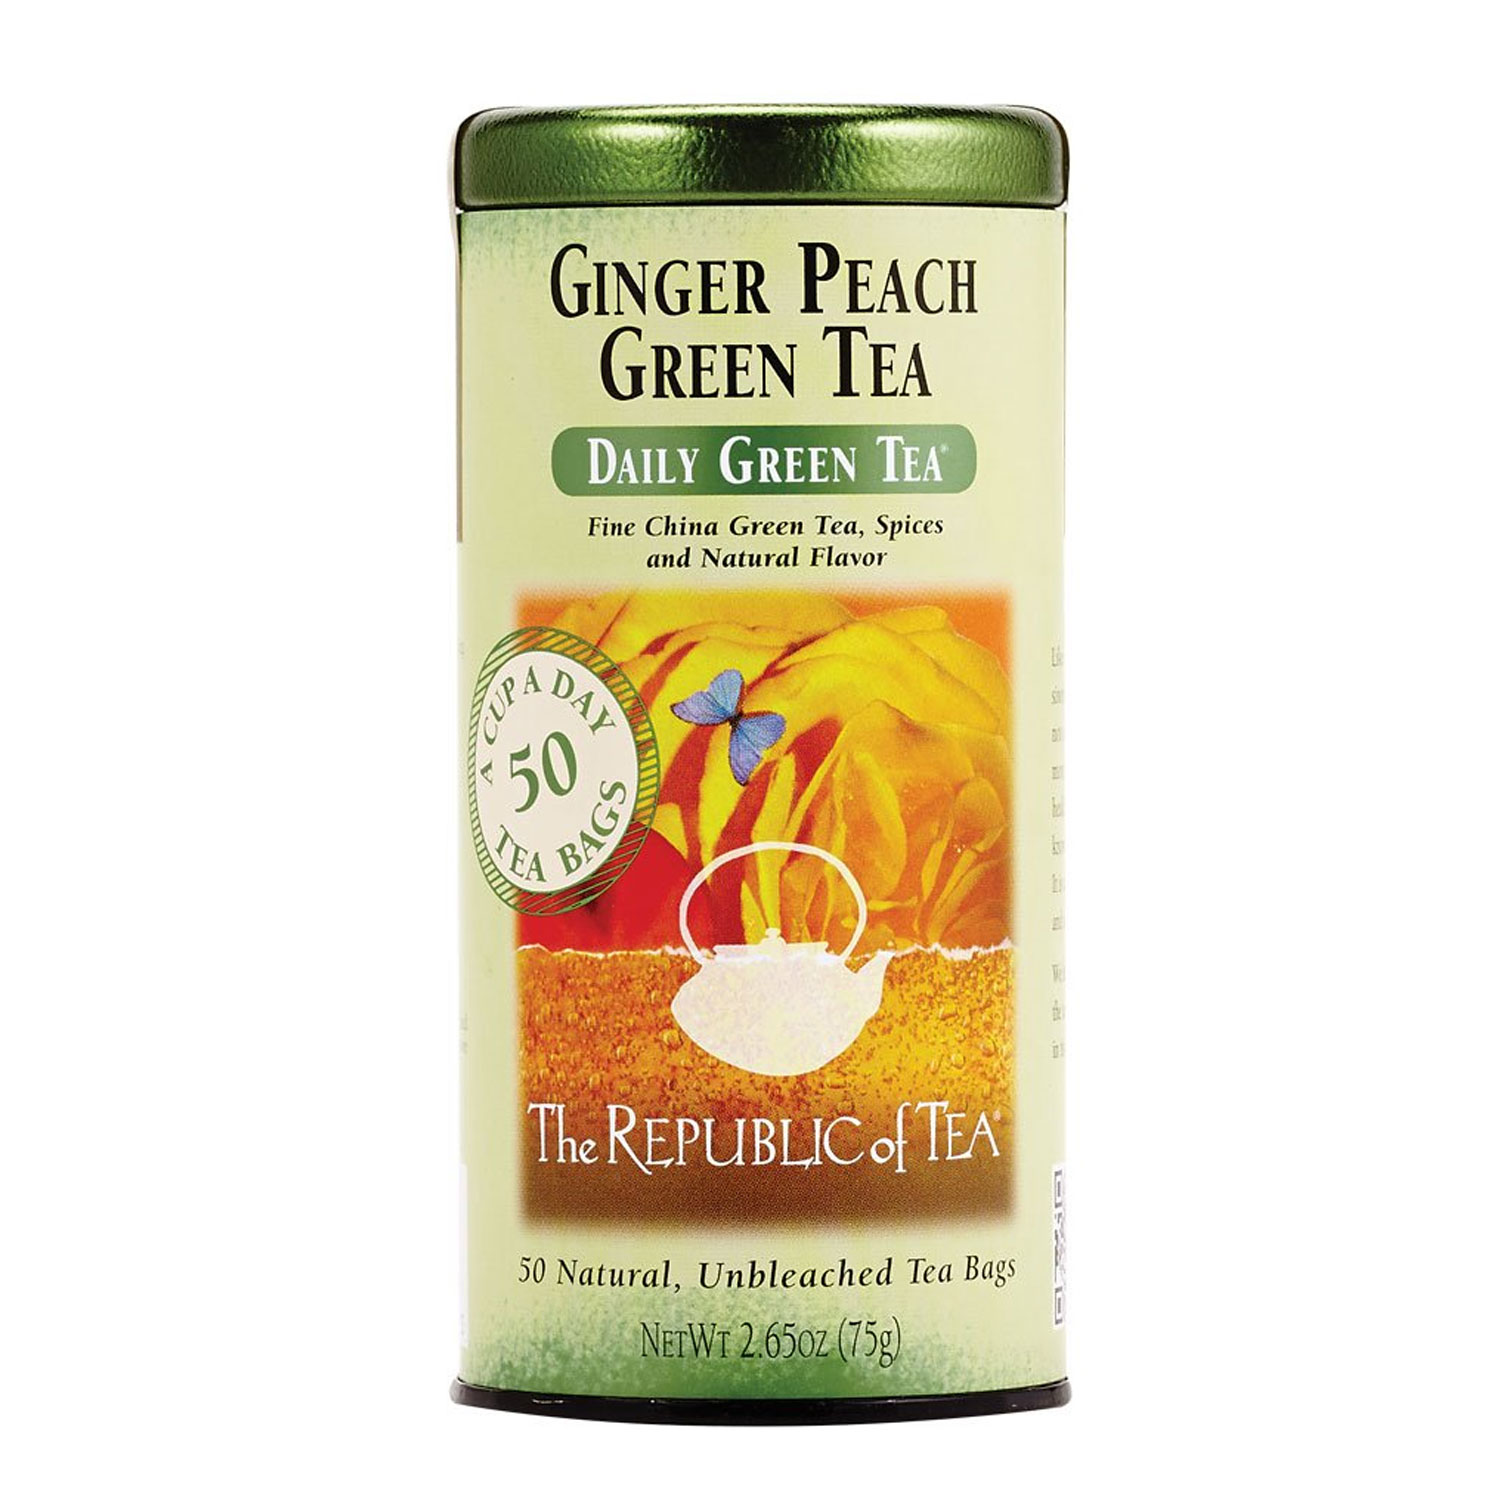 Ginger Peach Green Tea